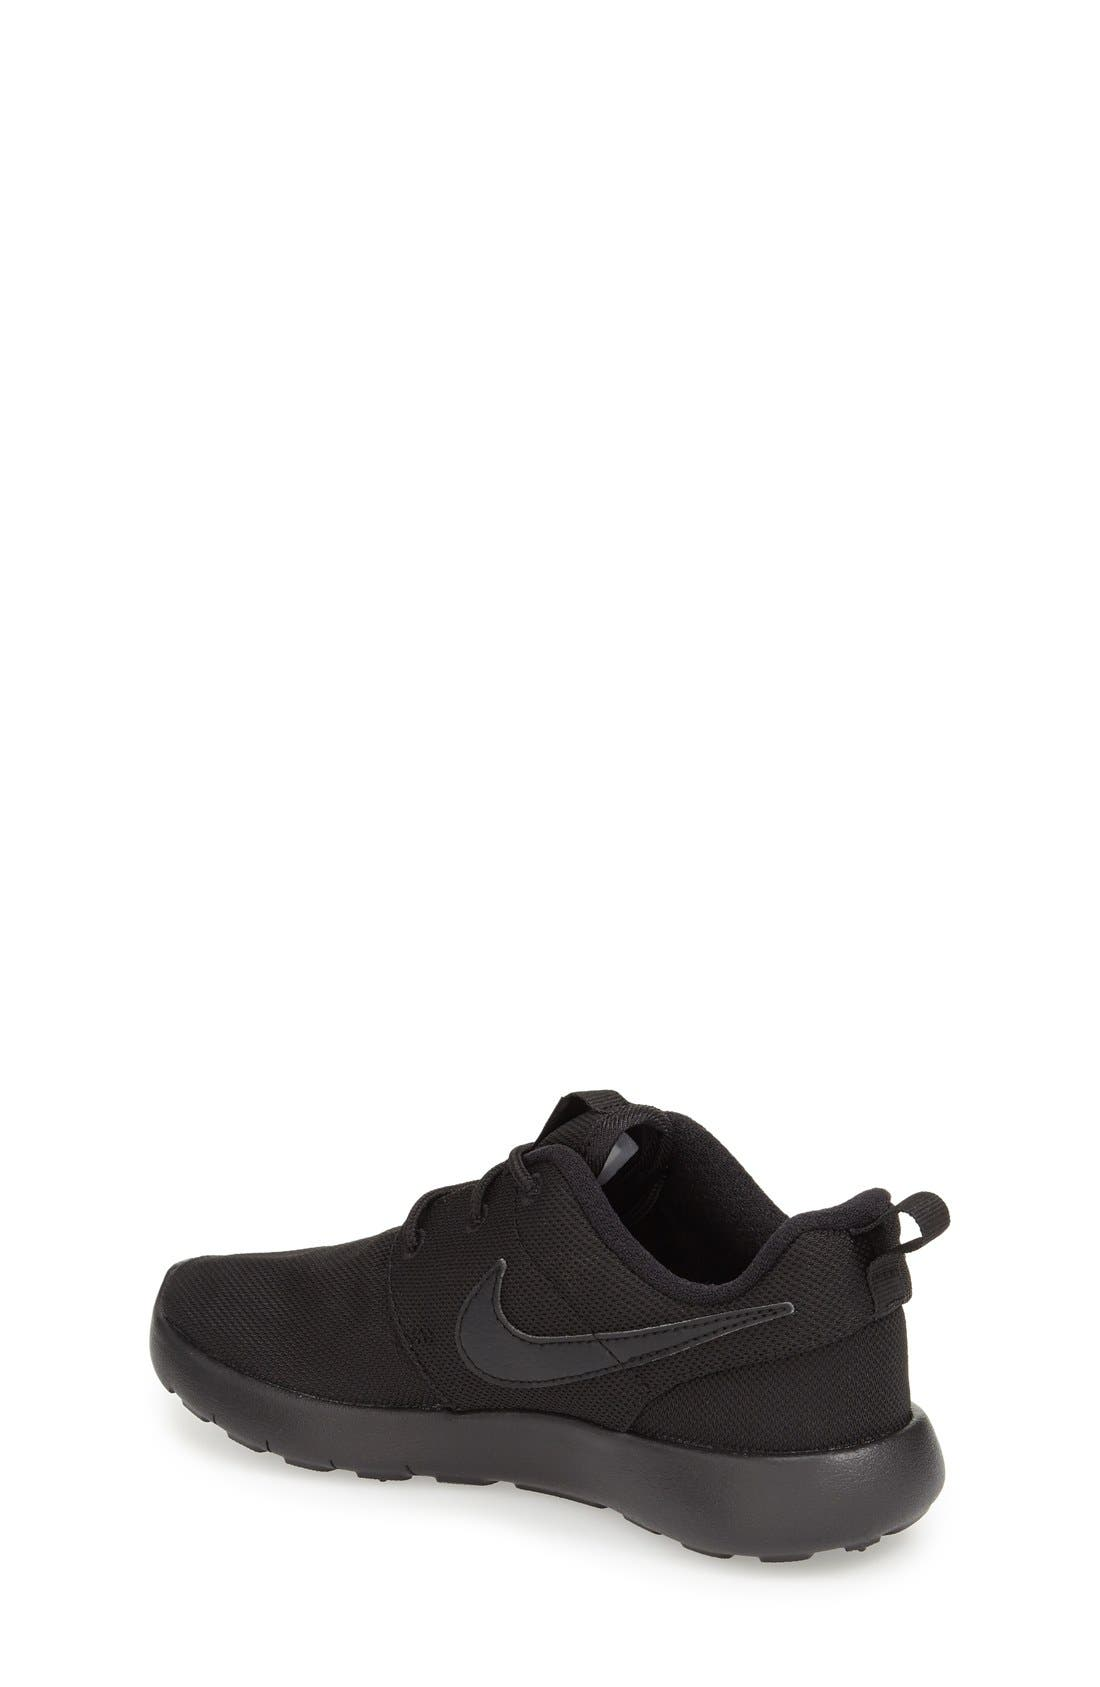 Roshe Run Sneaker,                             Alternate thumbnail 21, color,